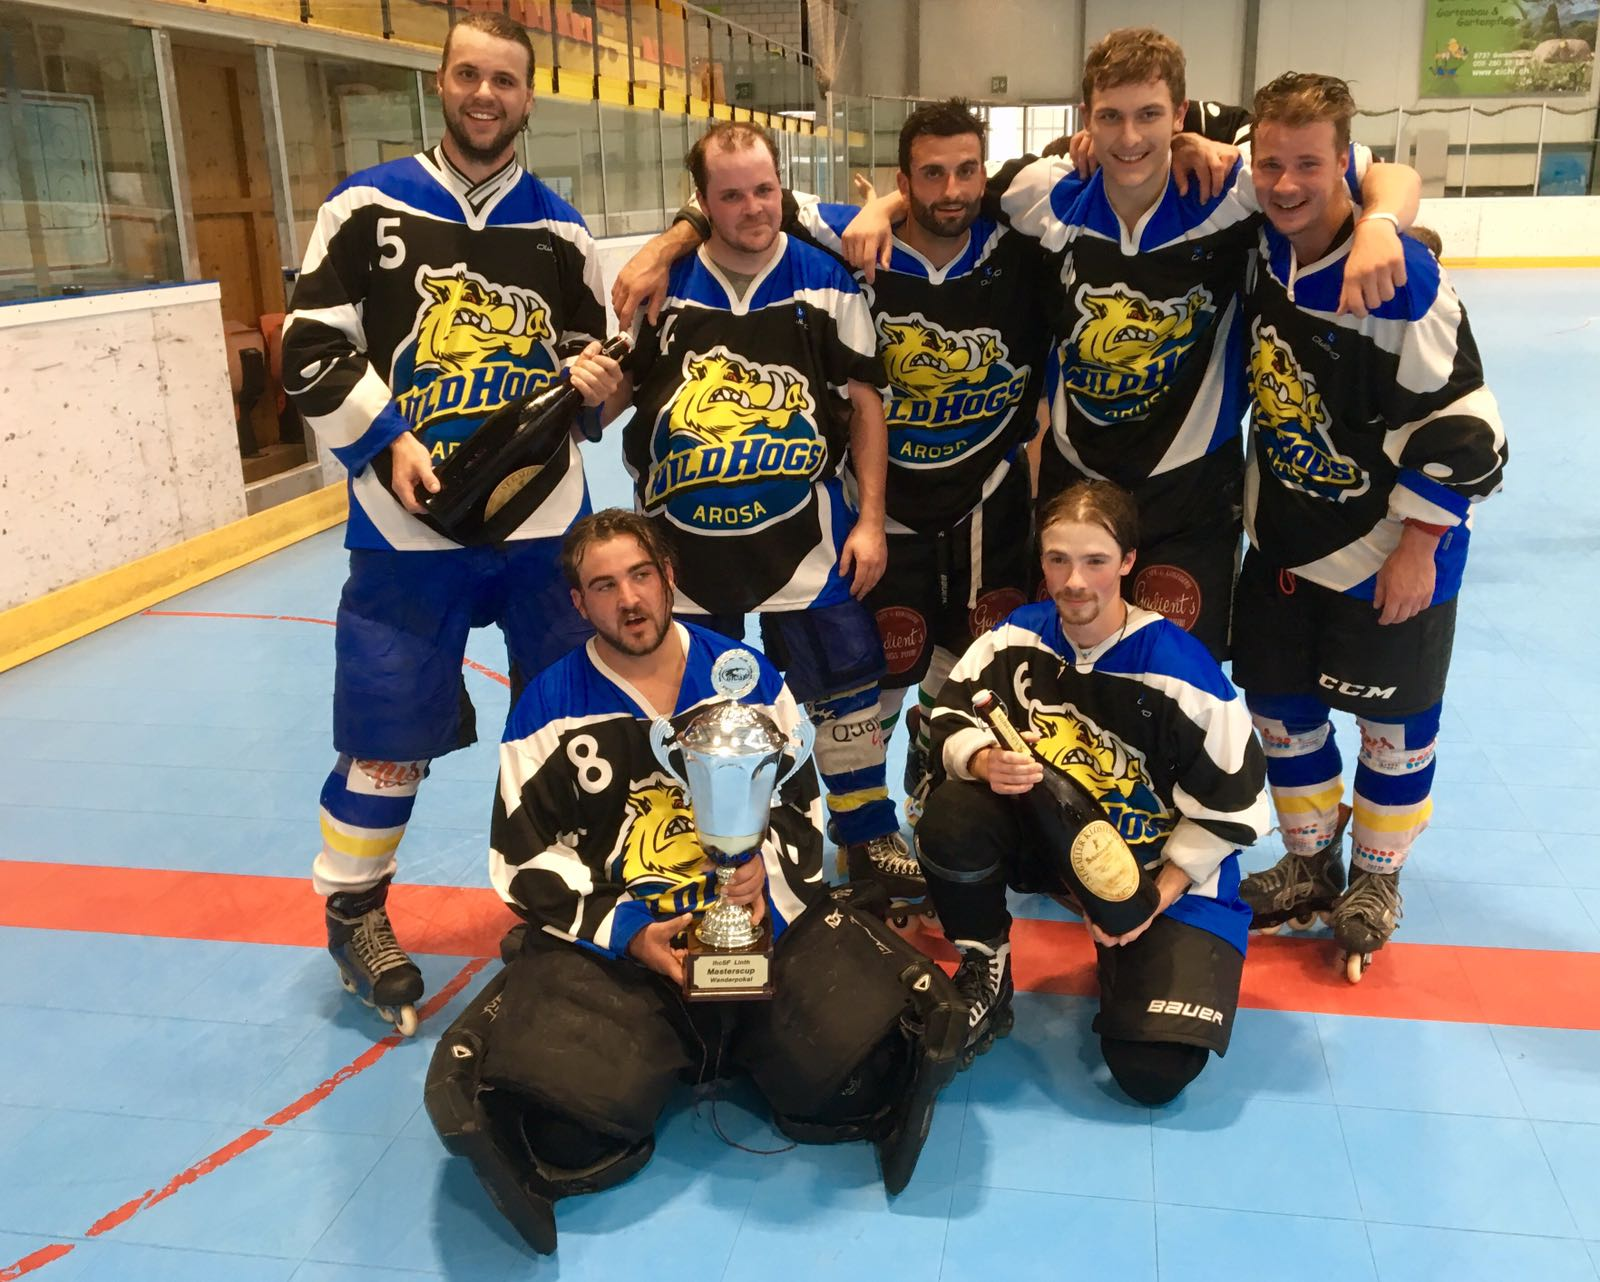 3. Masters Hockeycup